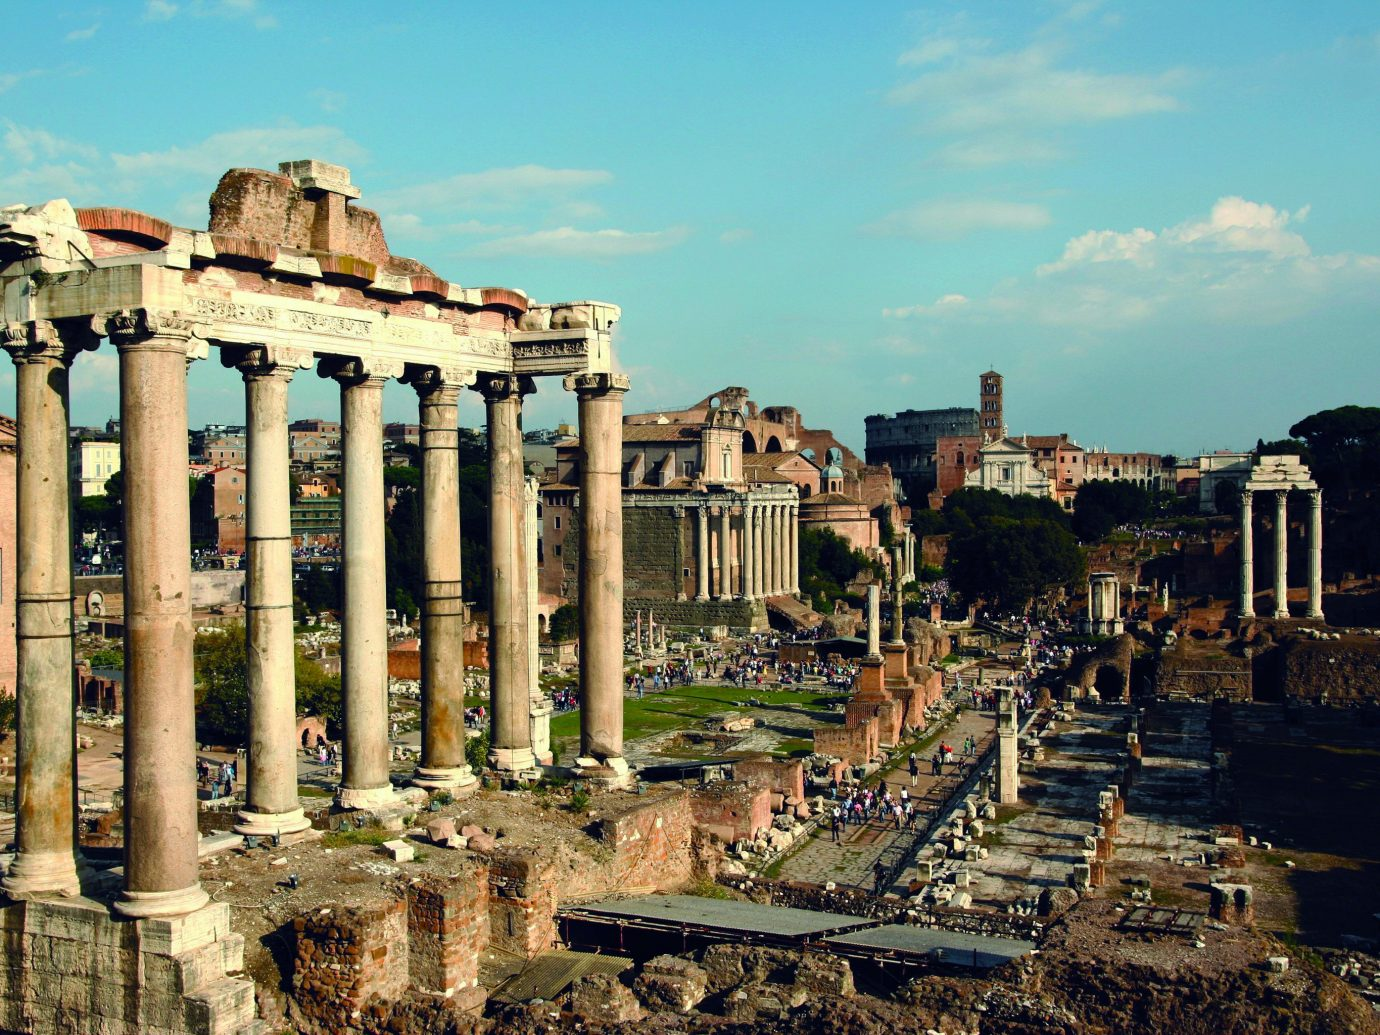 Budget Trip Ideas sky outdoor building landmark historic site Town structure ancient rome human settlement ancient history cityscape Ruins ruin ancient roman architecture palace plaza colonnade several